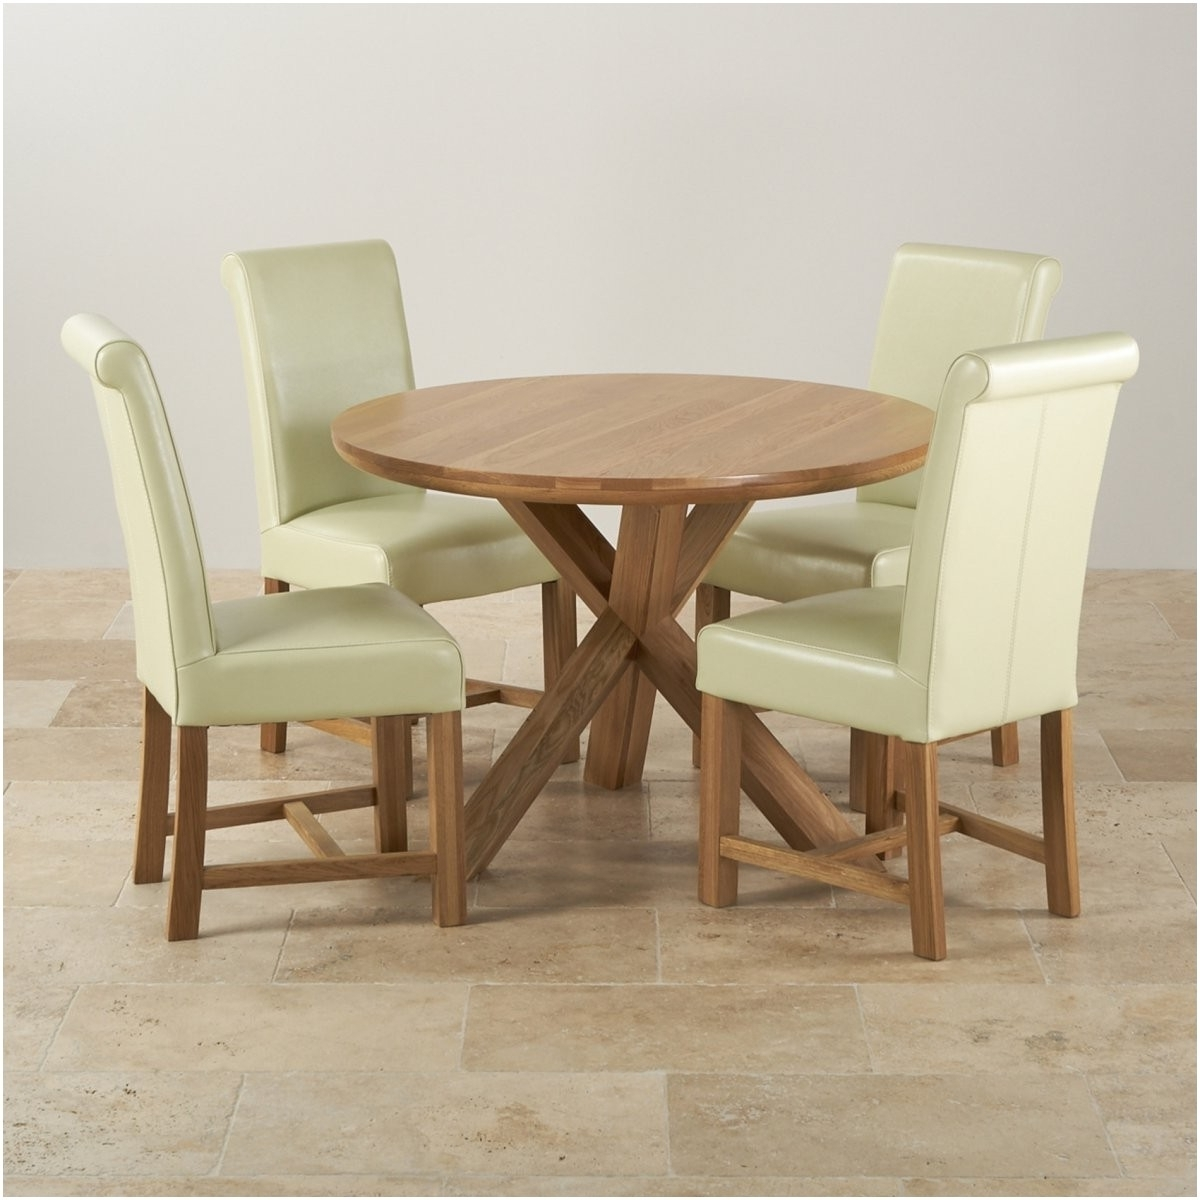 Ericamchristensen In Round Oak Dining Tables And 4 Chairs (View 5 of 25)